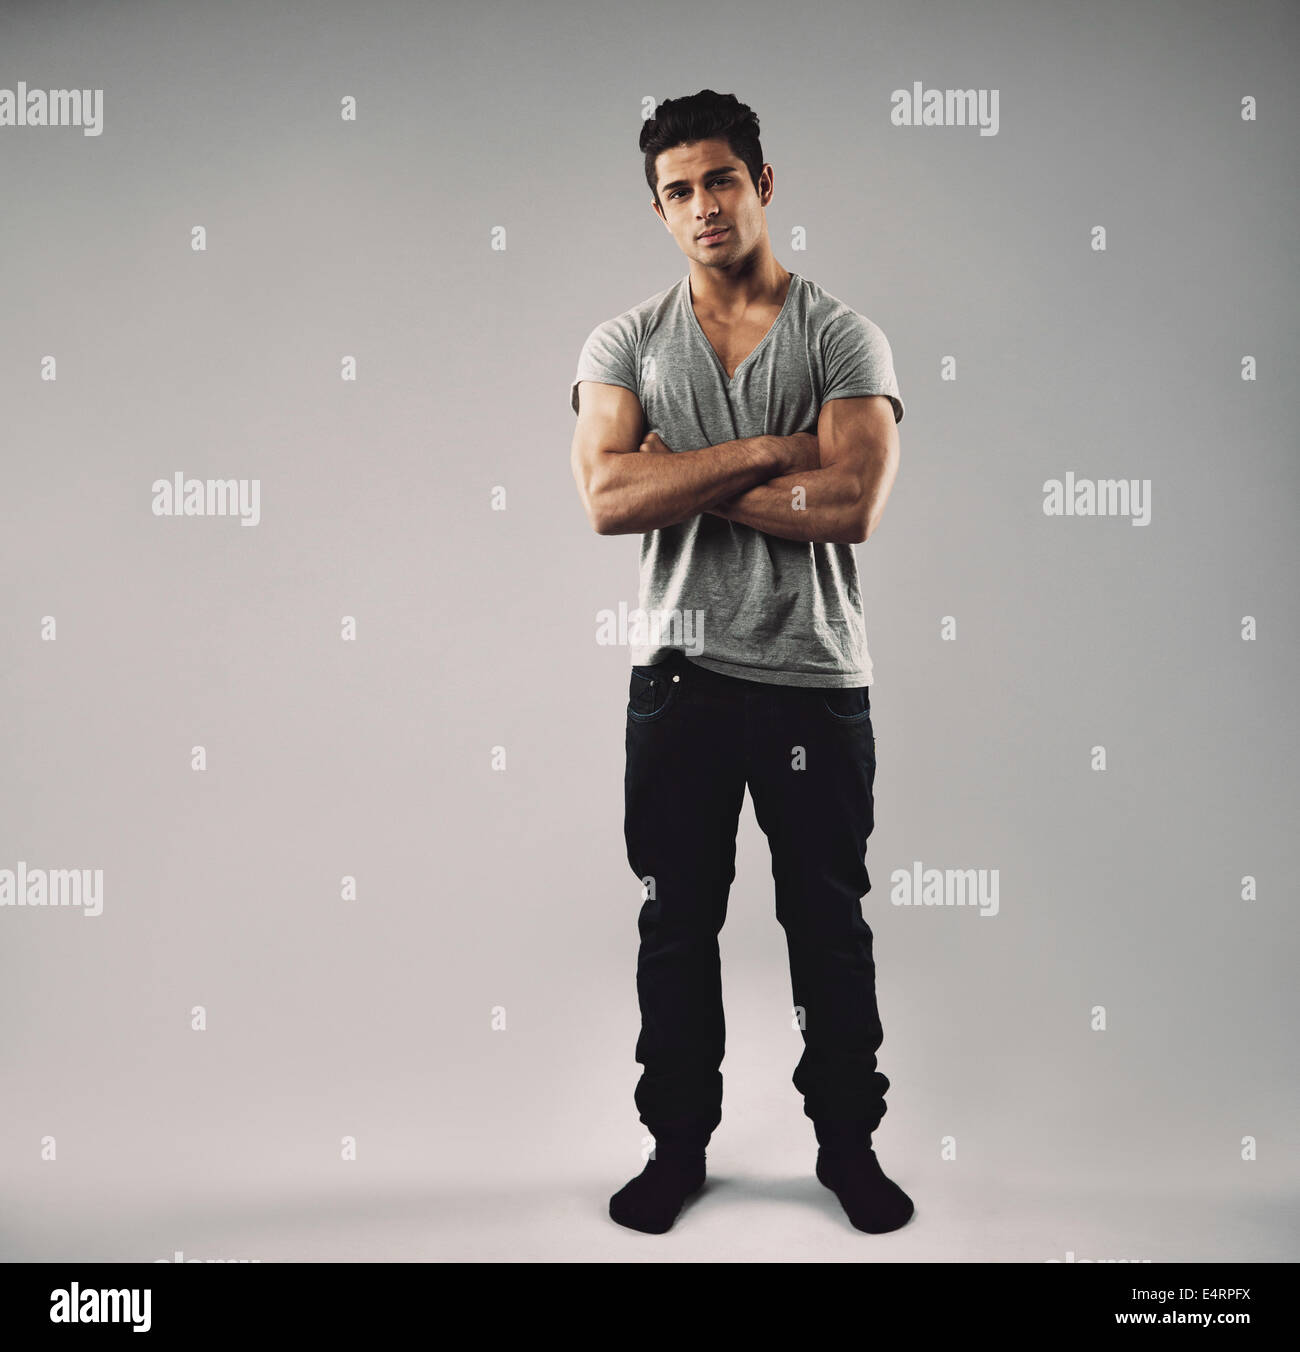 Full length portrait of muscular young man standing with his arms crossed. Hispanic mate model in casuals with copy - Stock Image